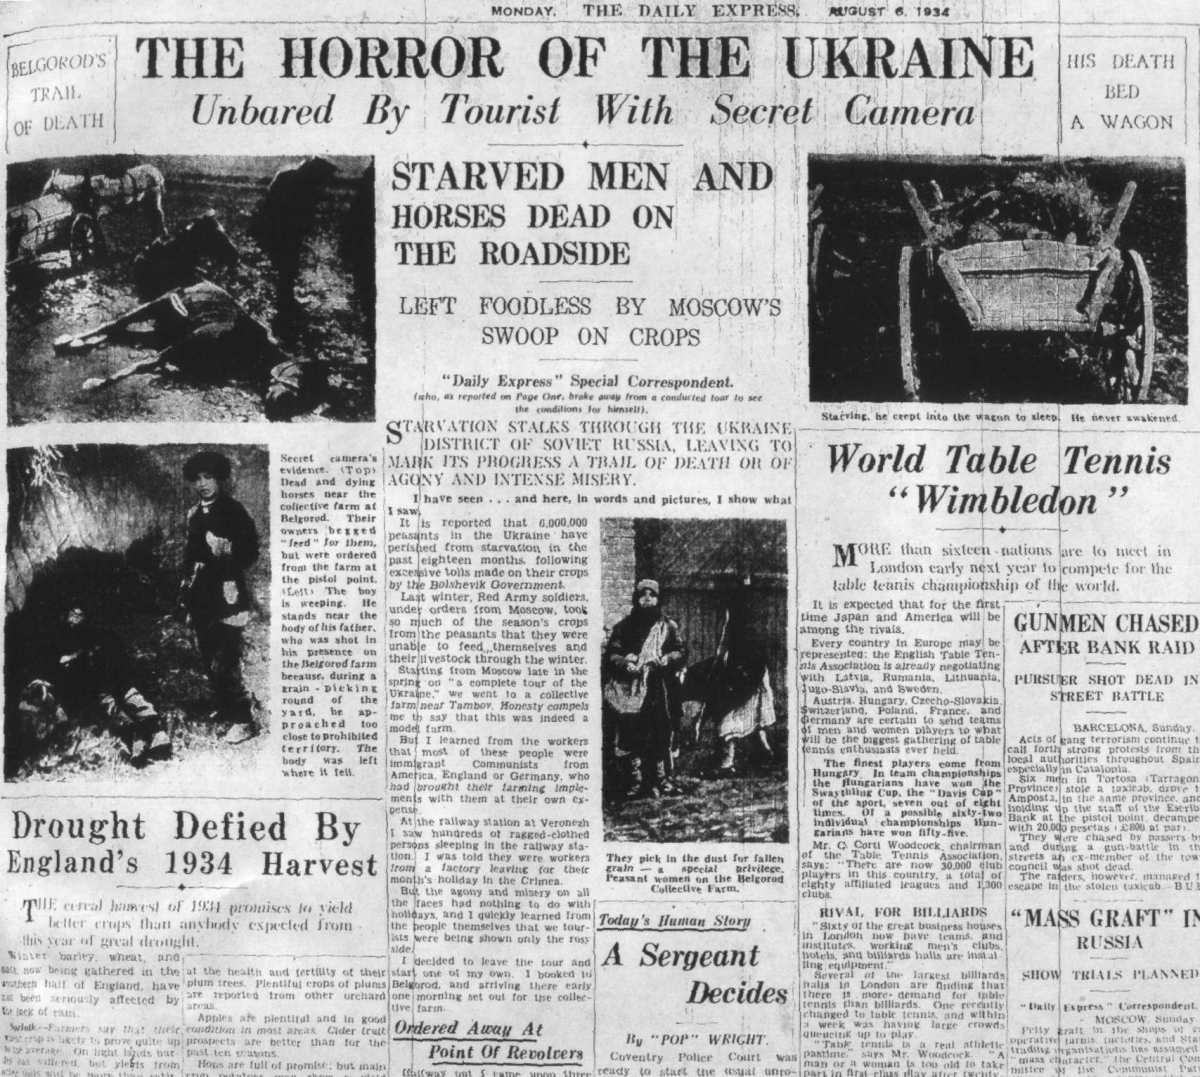 Newspaper account of Holodomor